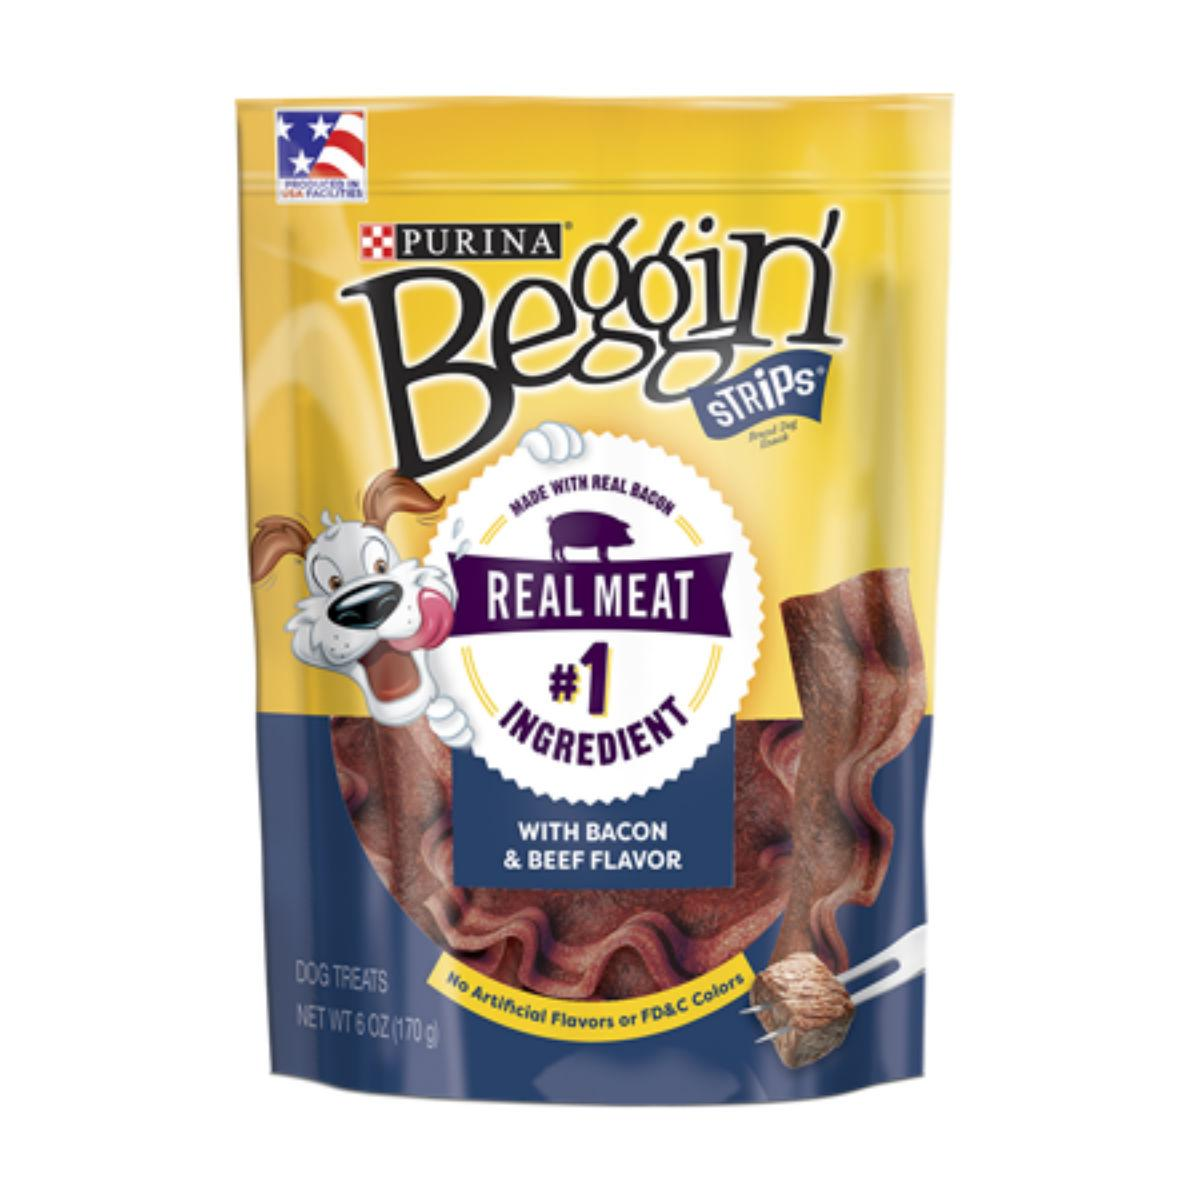 Purina Beggin Strips Dog Treat - Bacon and Beef Flavor